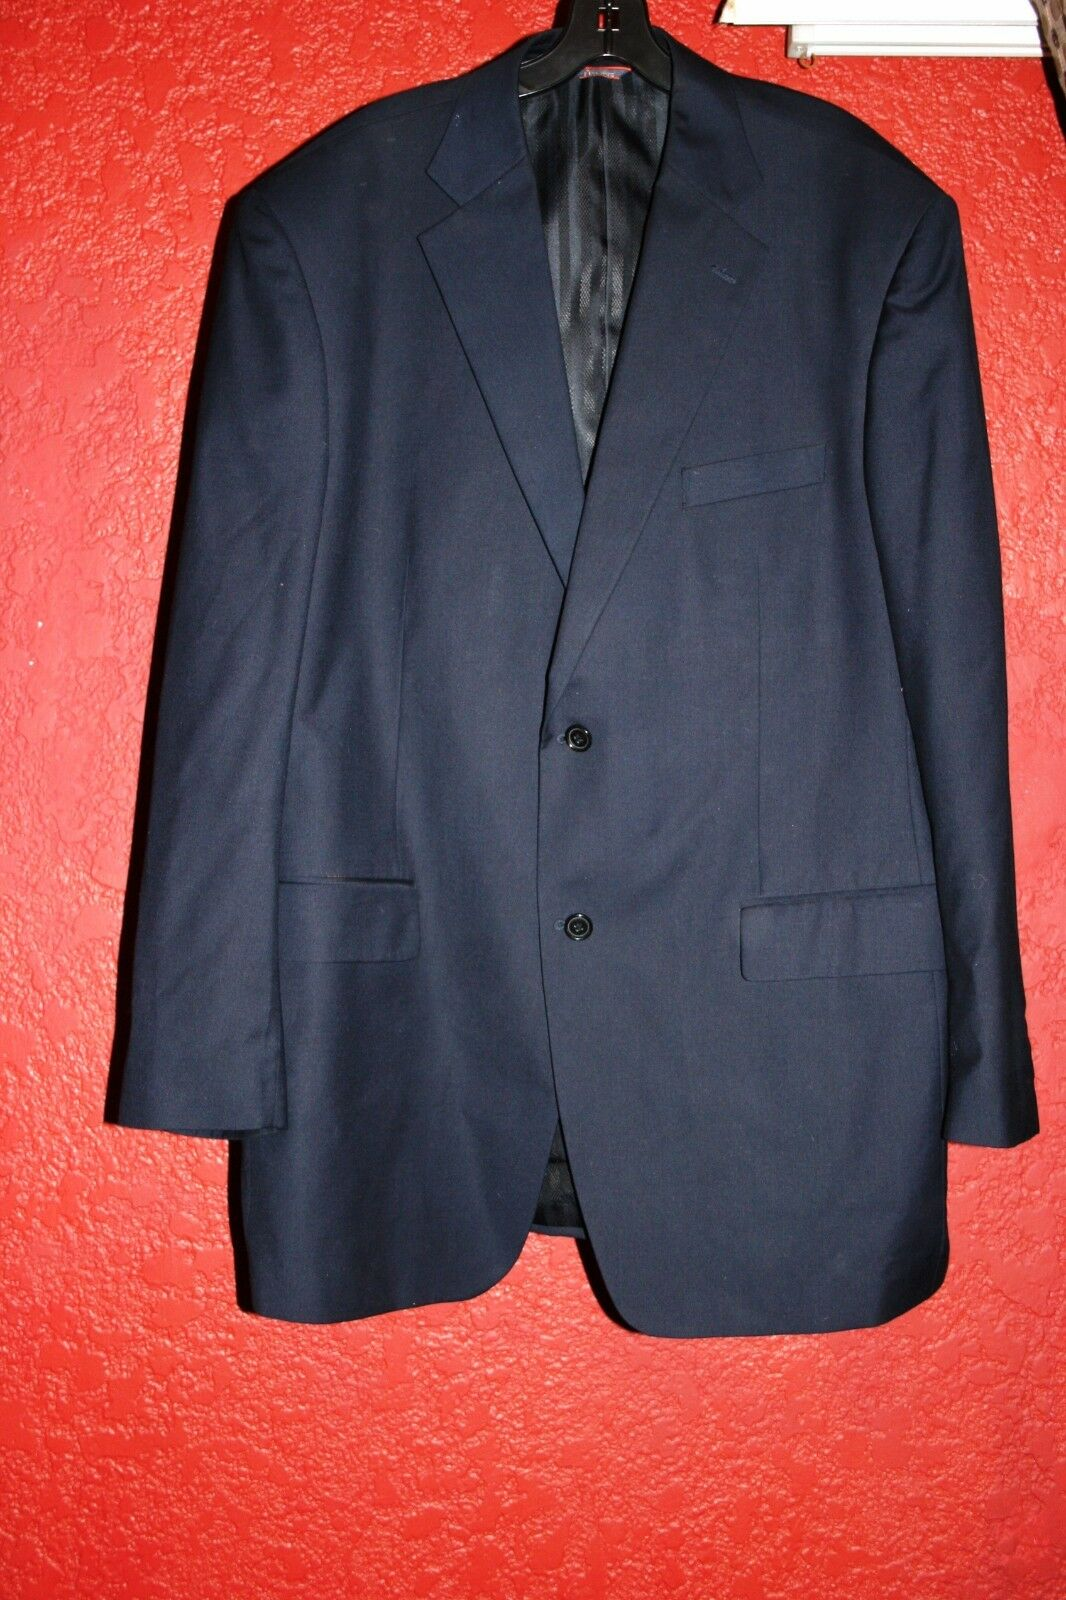 MARCHATTI MADE IN ITALY MEN'S BLAZER NAVY blueE 2 BUTTONS SIZE 48 L